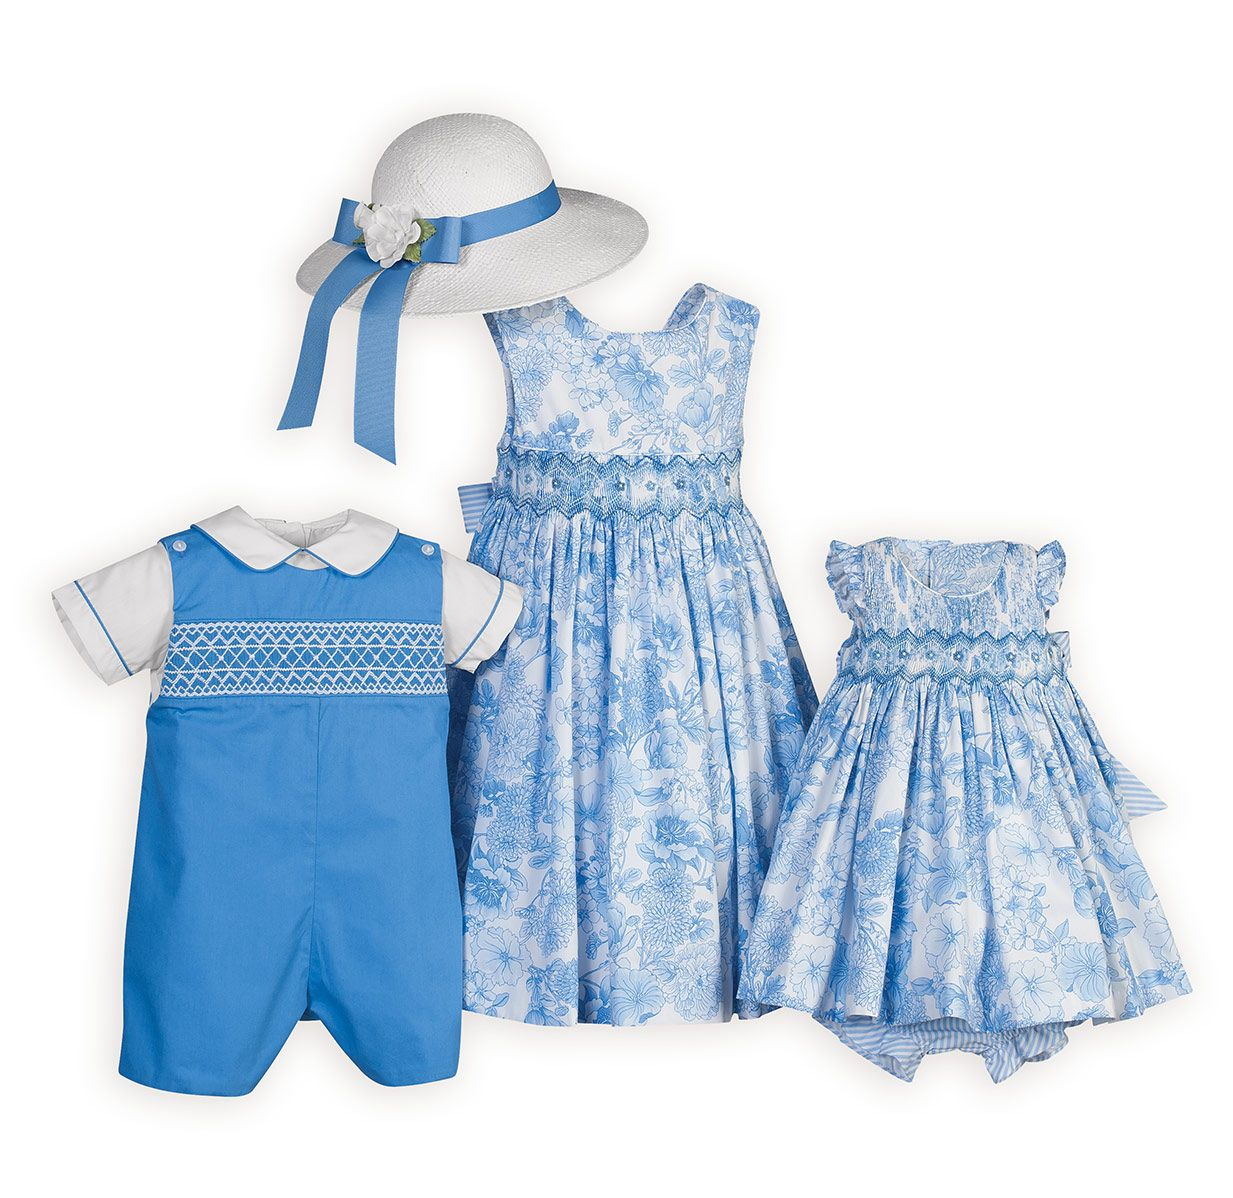 33aebaa2b5d9 Captivating Blue Floral Brother Sister Outfits Smocked Dresses ...